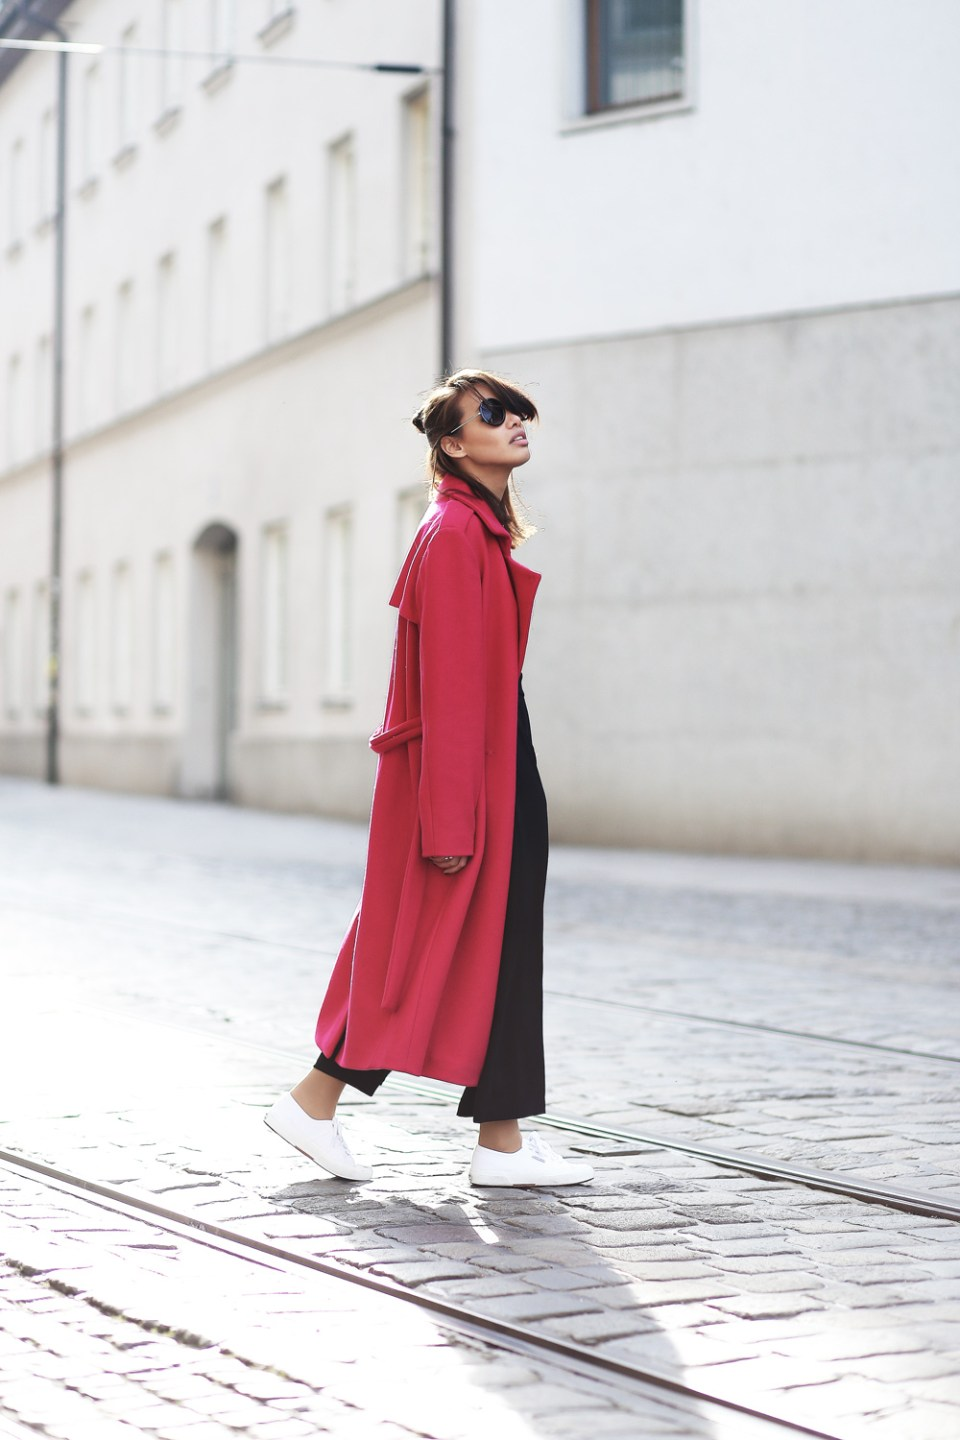 PINK-MANTEL-COAT-LACE-OVERALL-CULOTTES-SUPERGA-ZARA-THEFASHIONANARCHY-LOOK-STYLE-OUTFIT-SNEAKER-BLACK-SPITZE-FASHIONBLOG-MODEBLOG-STYLEBLOG-MUNICH-DIANABUENGER-7